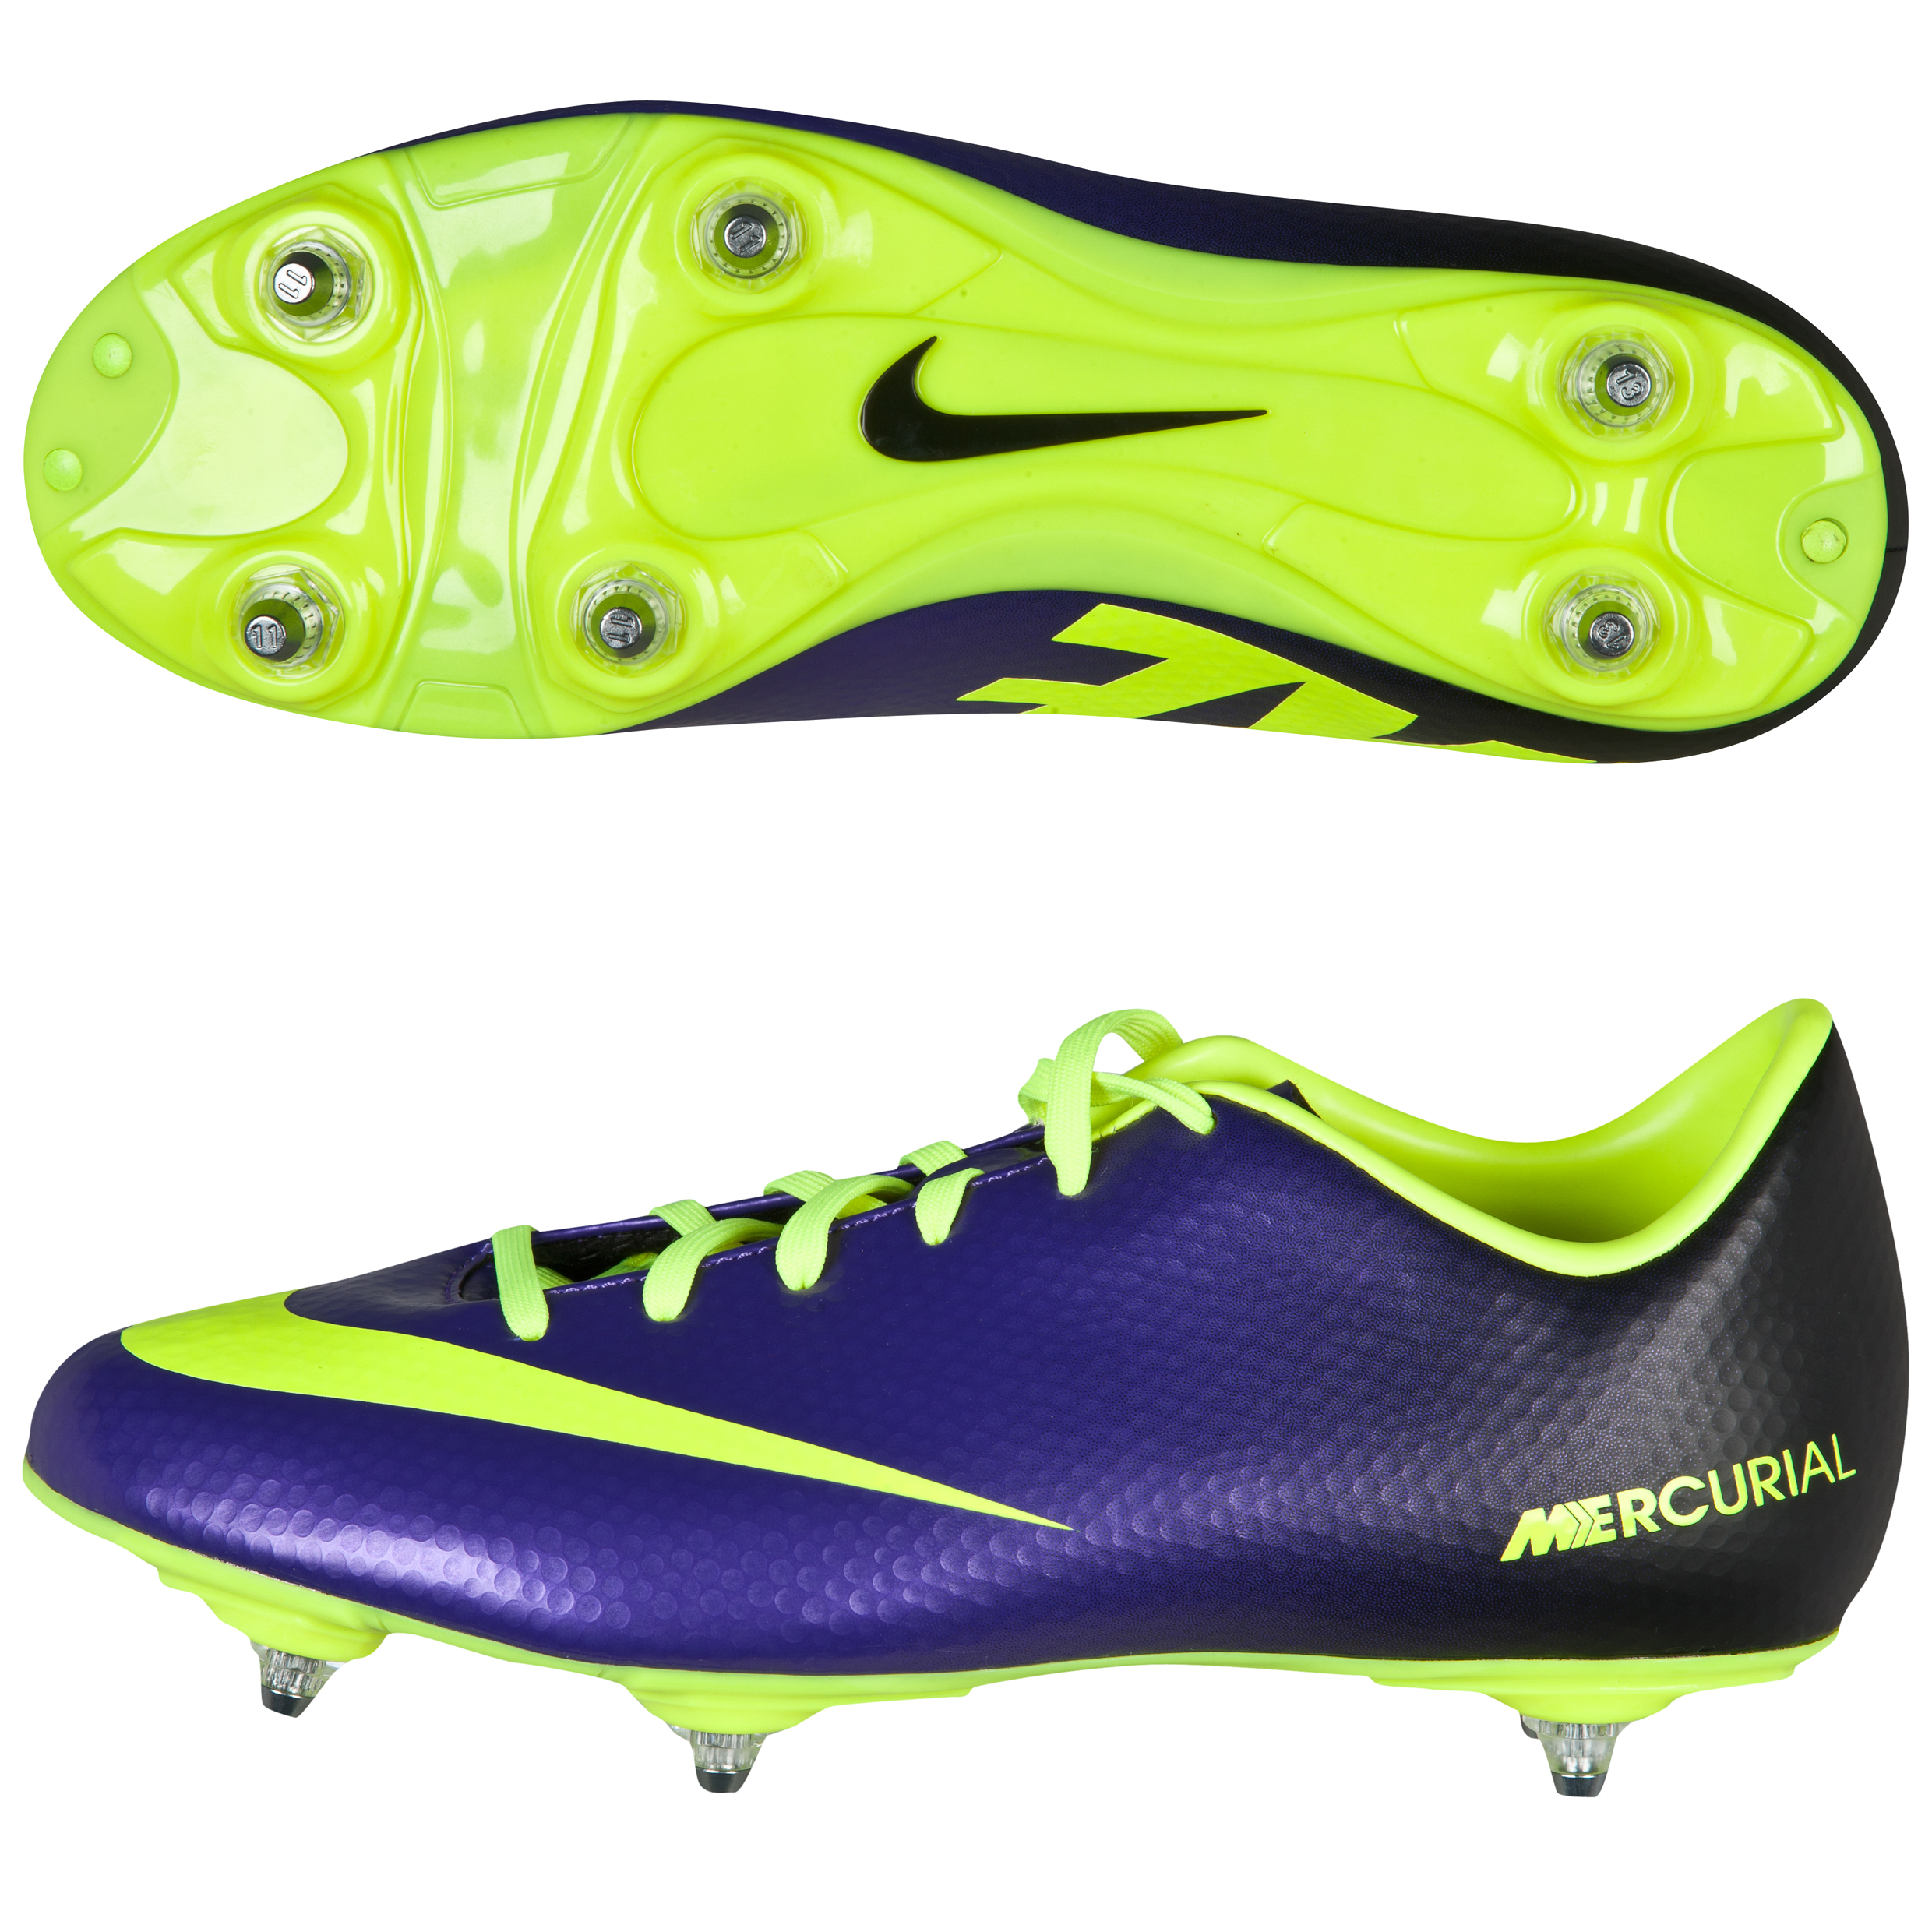 Nike Mercurial Victory Iv Soft Ground Football Boots - Kids-Electro Purple/Volt/Black Purple